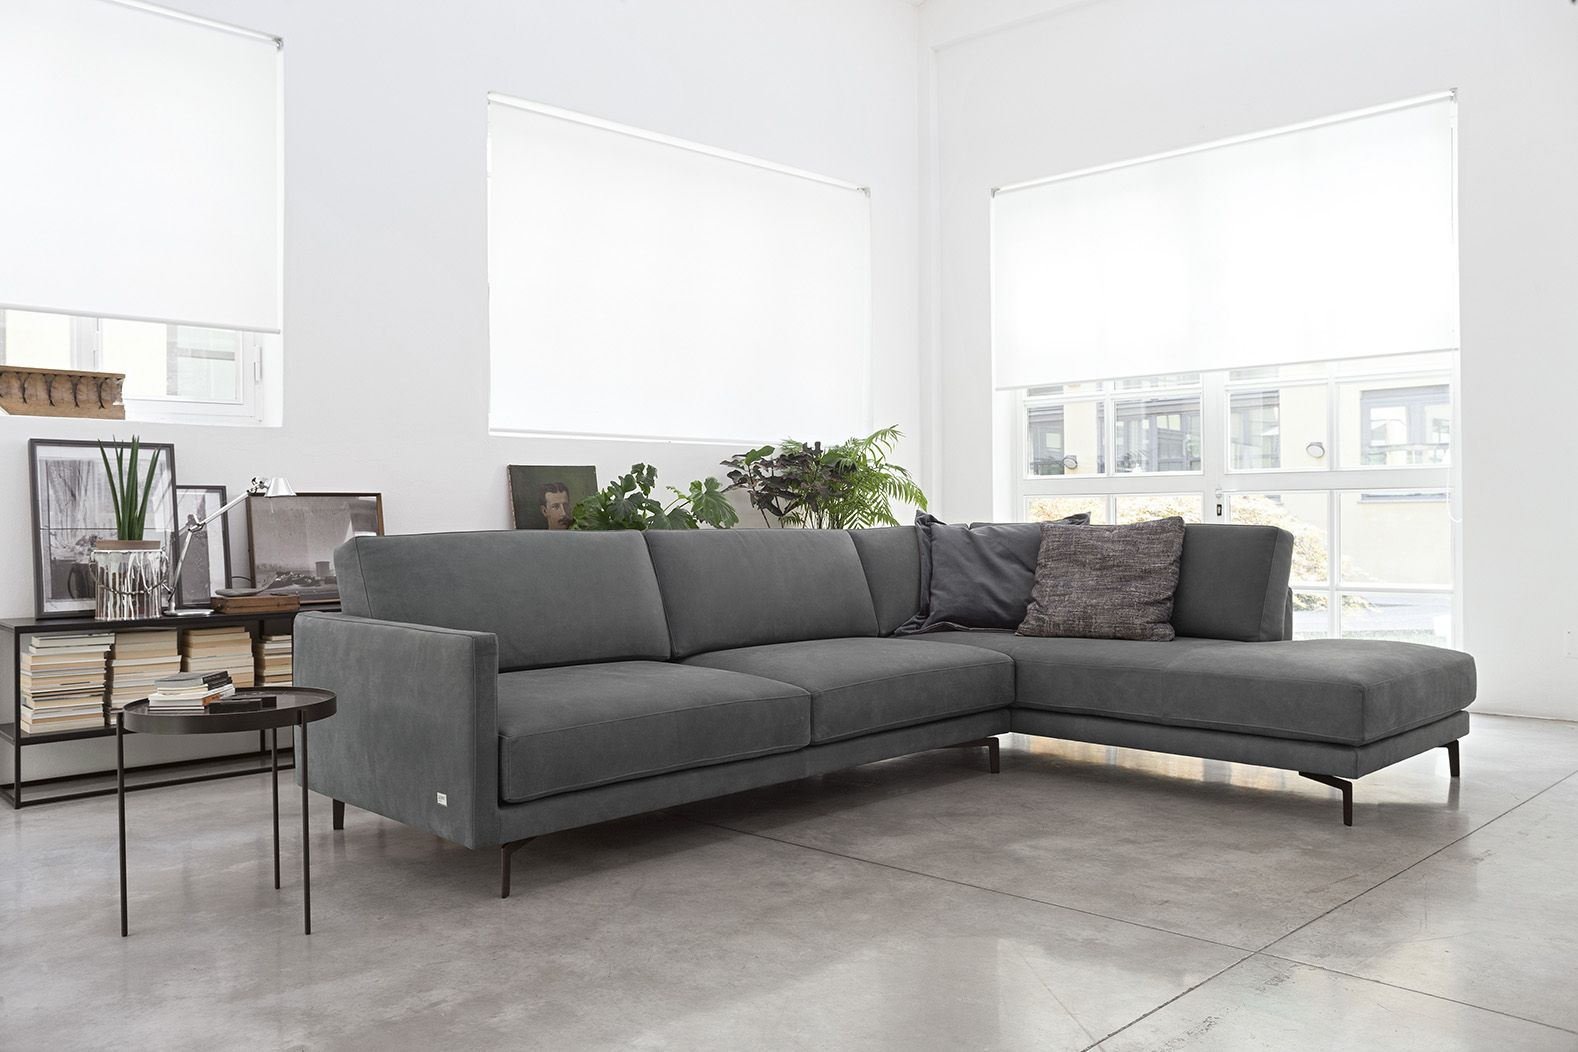 Divano Design Minimal Divano Konnor Leather Sofa Empio Collection By Doimo Salotti